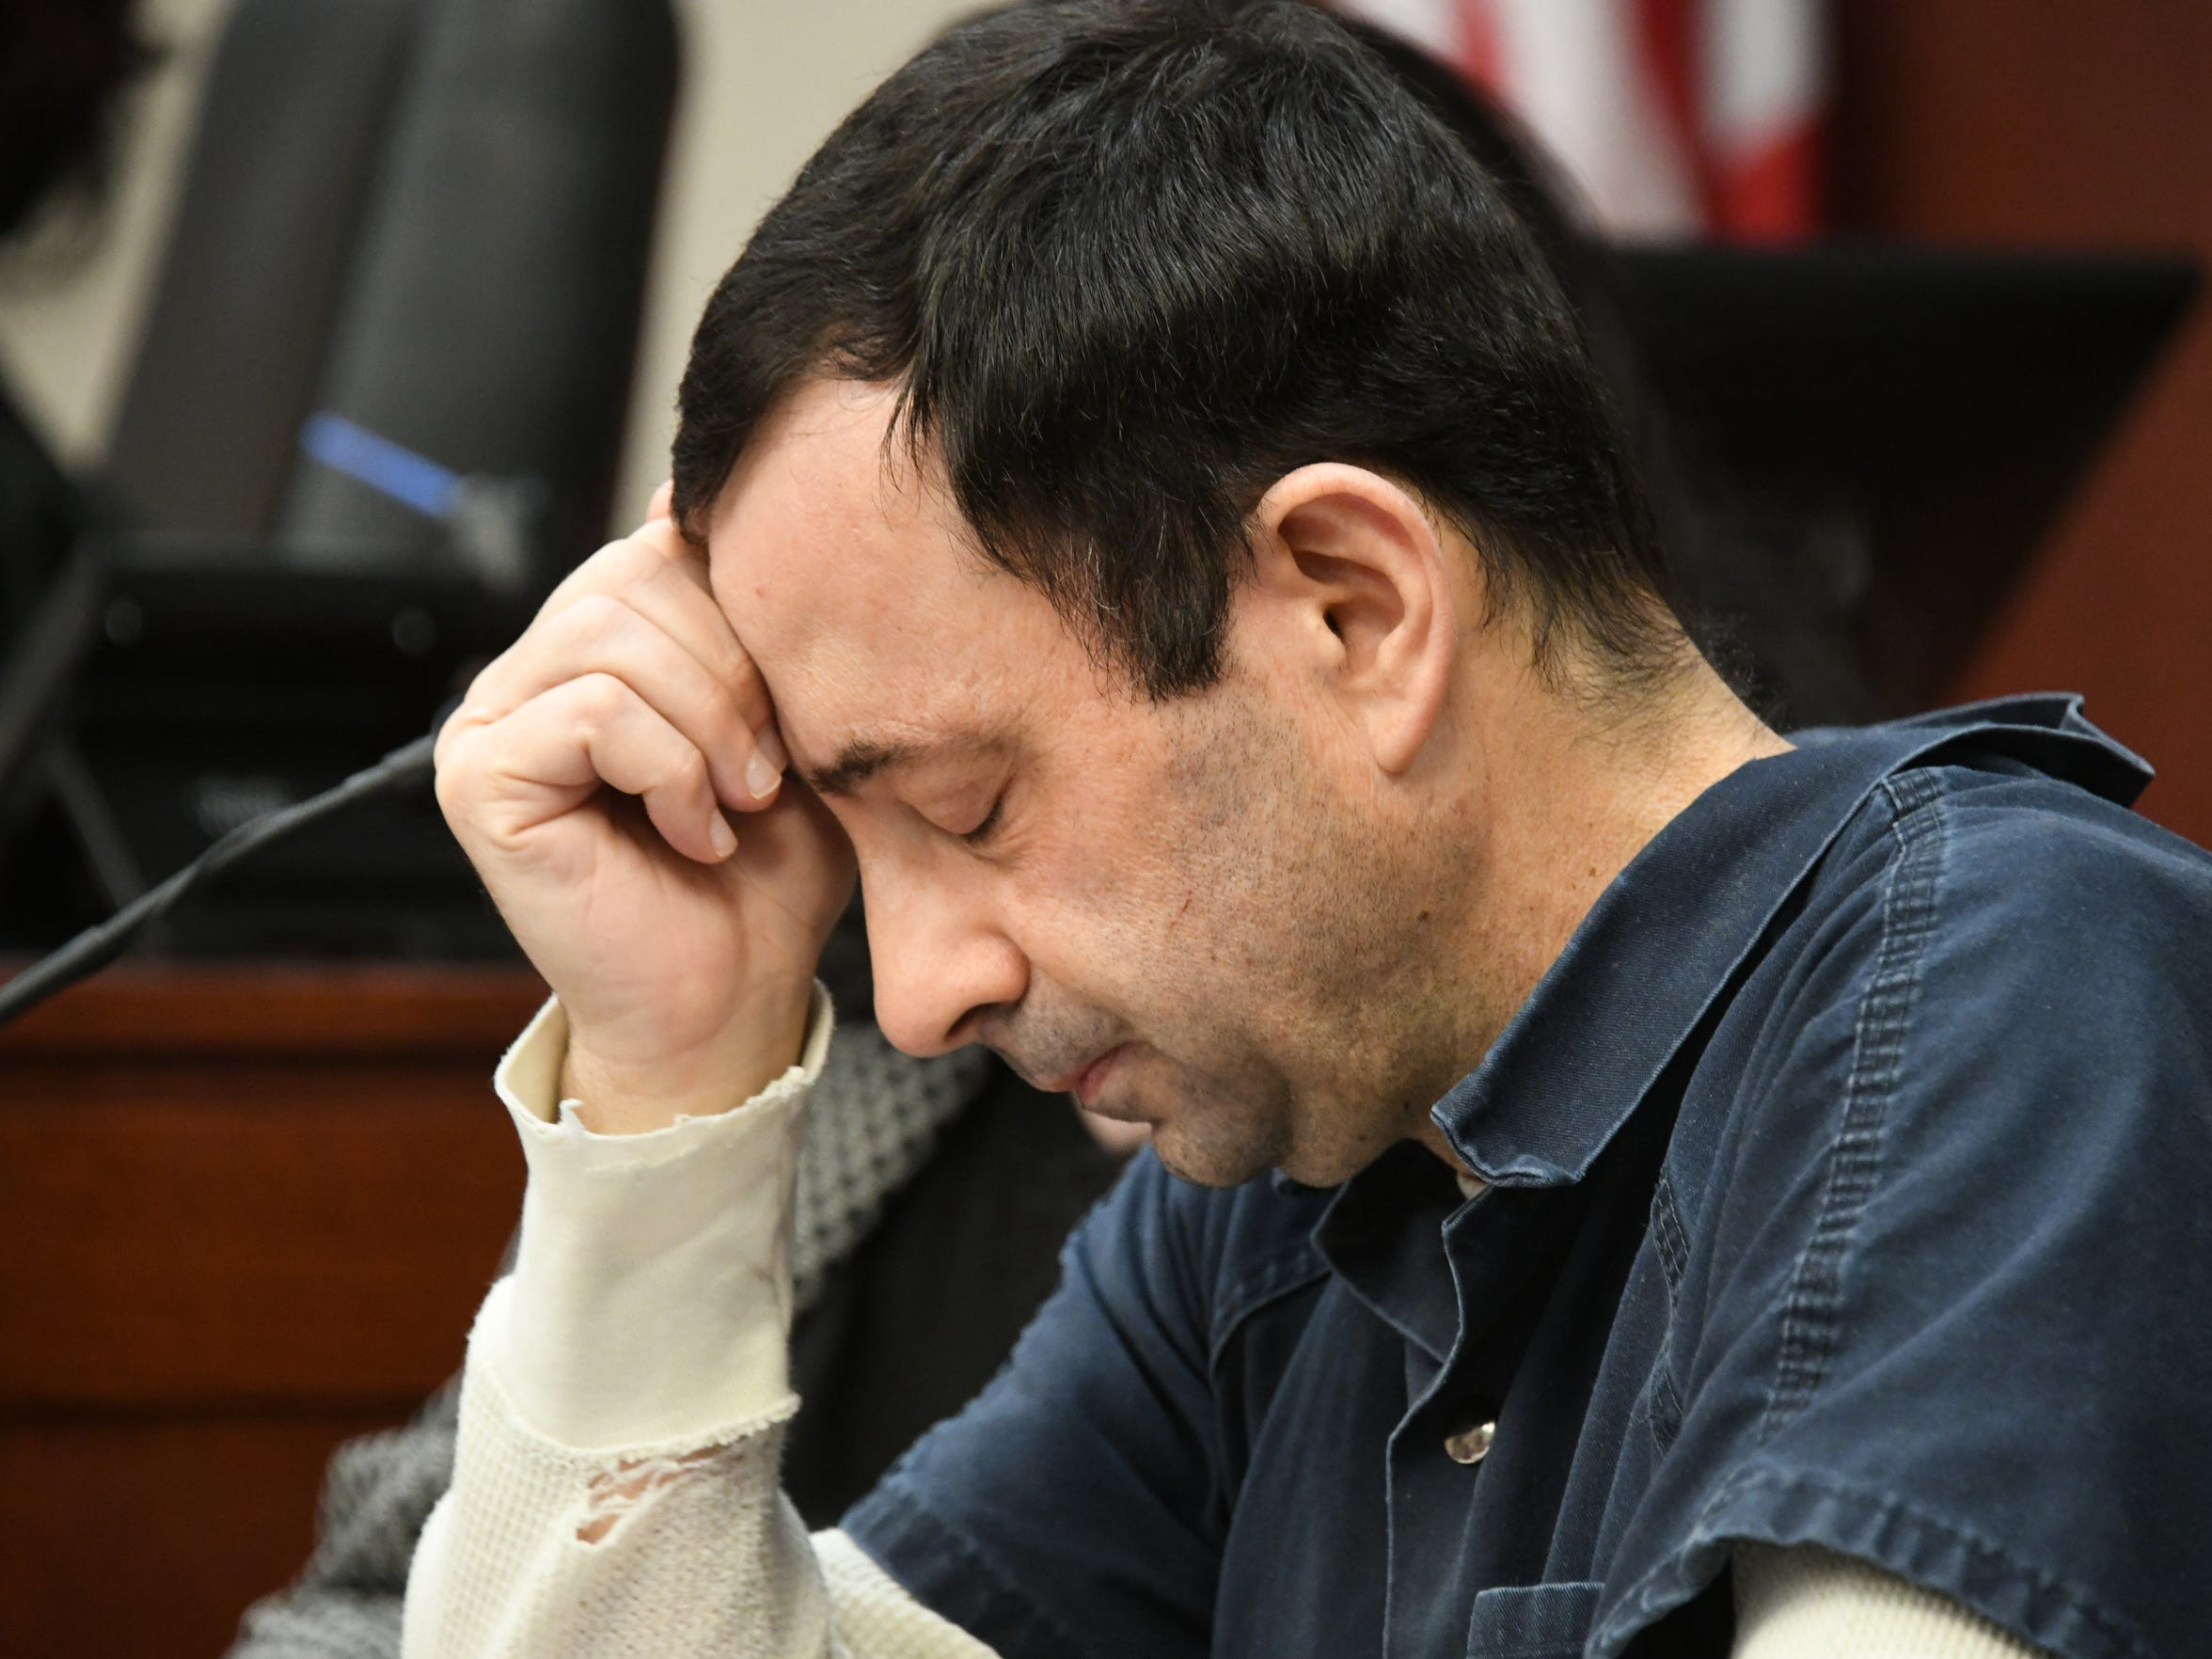 Nassar is forced to listen to days of victims' impact statements in court, as they tell their stories and the lasting effect his crimes have had on them.